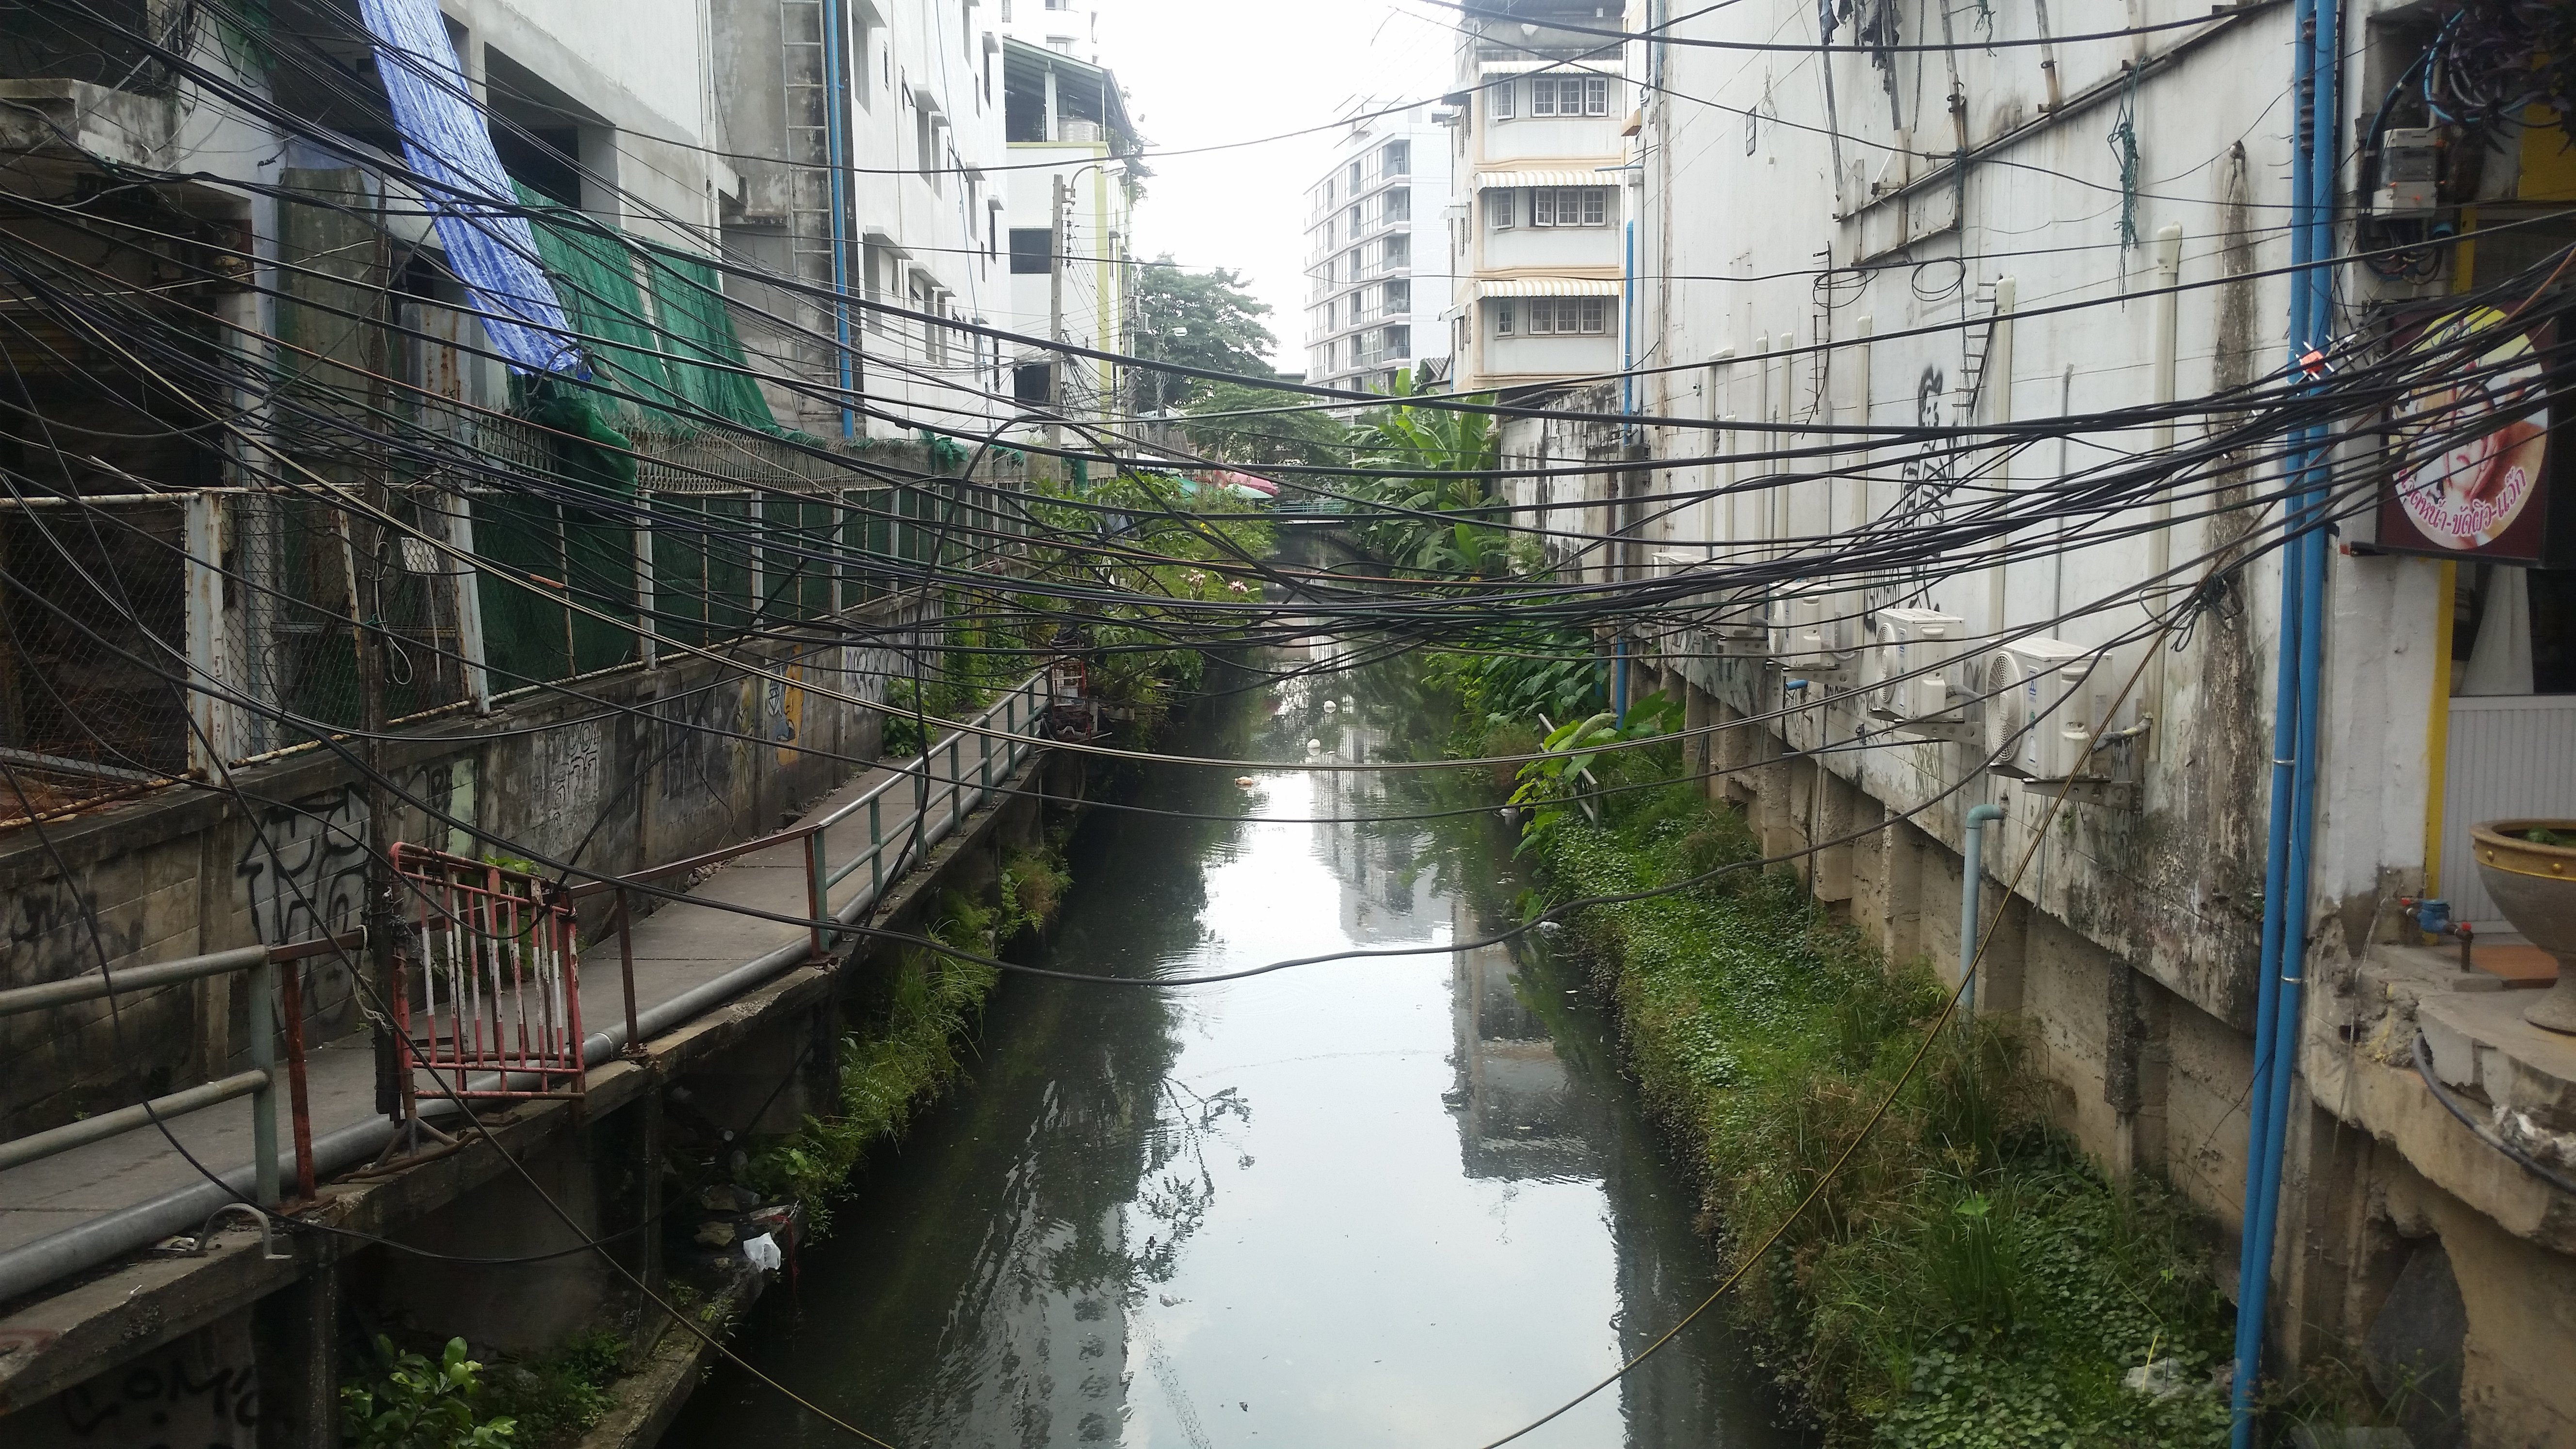 Historically, Bangkok was a city of canals much like Venice. Most were filled in, but many remain.